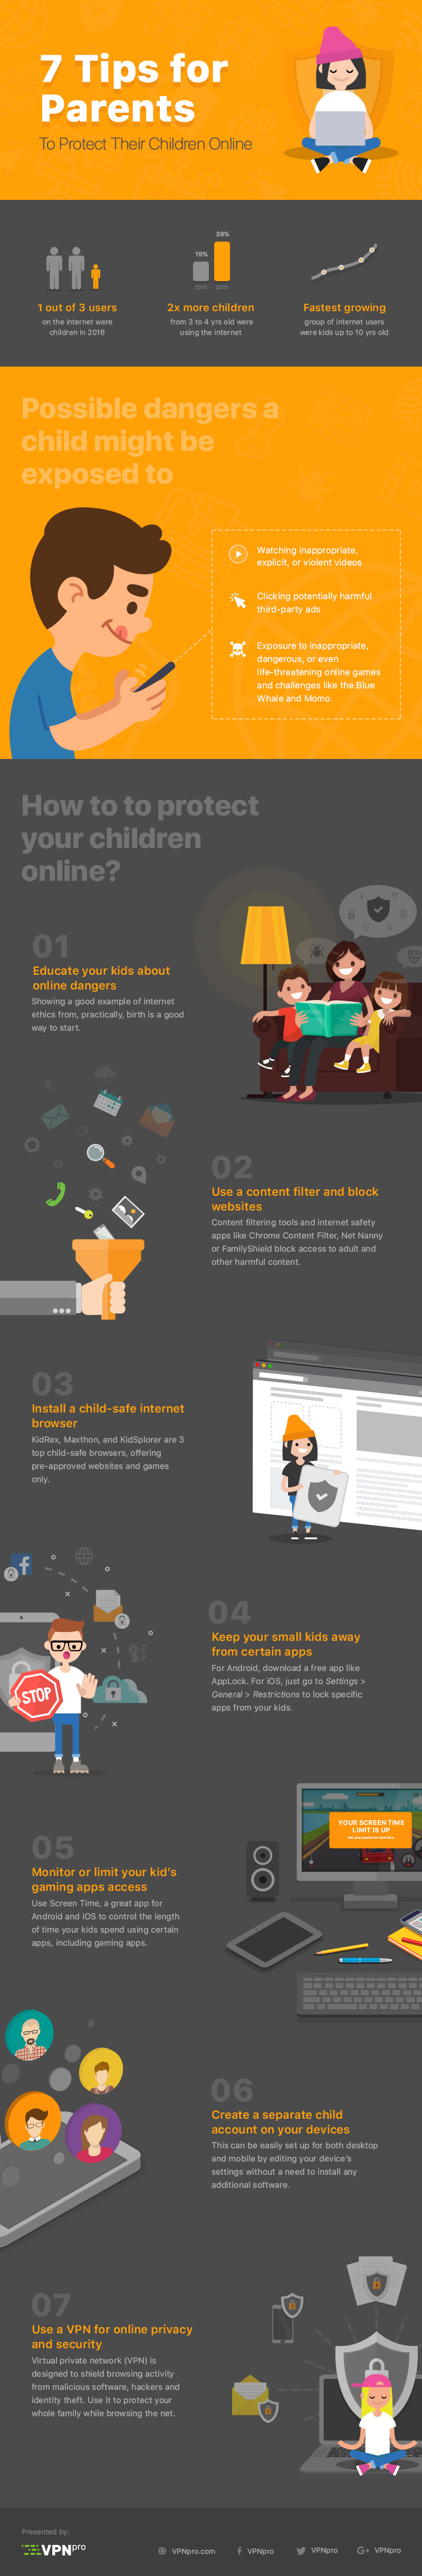 internet safety for kids infographic